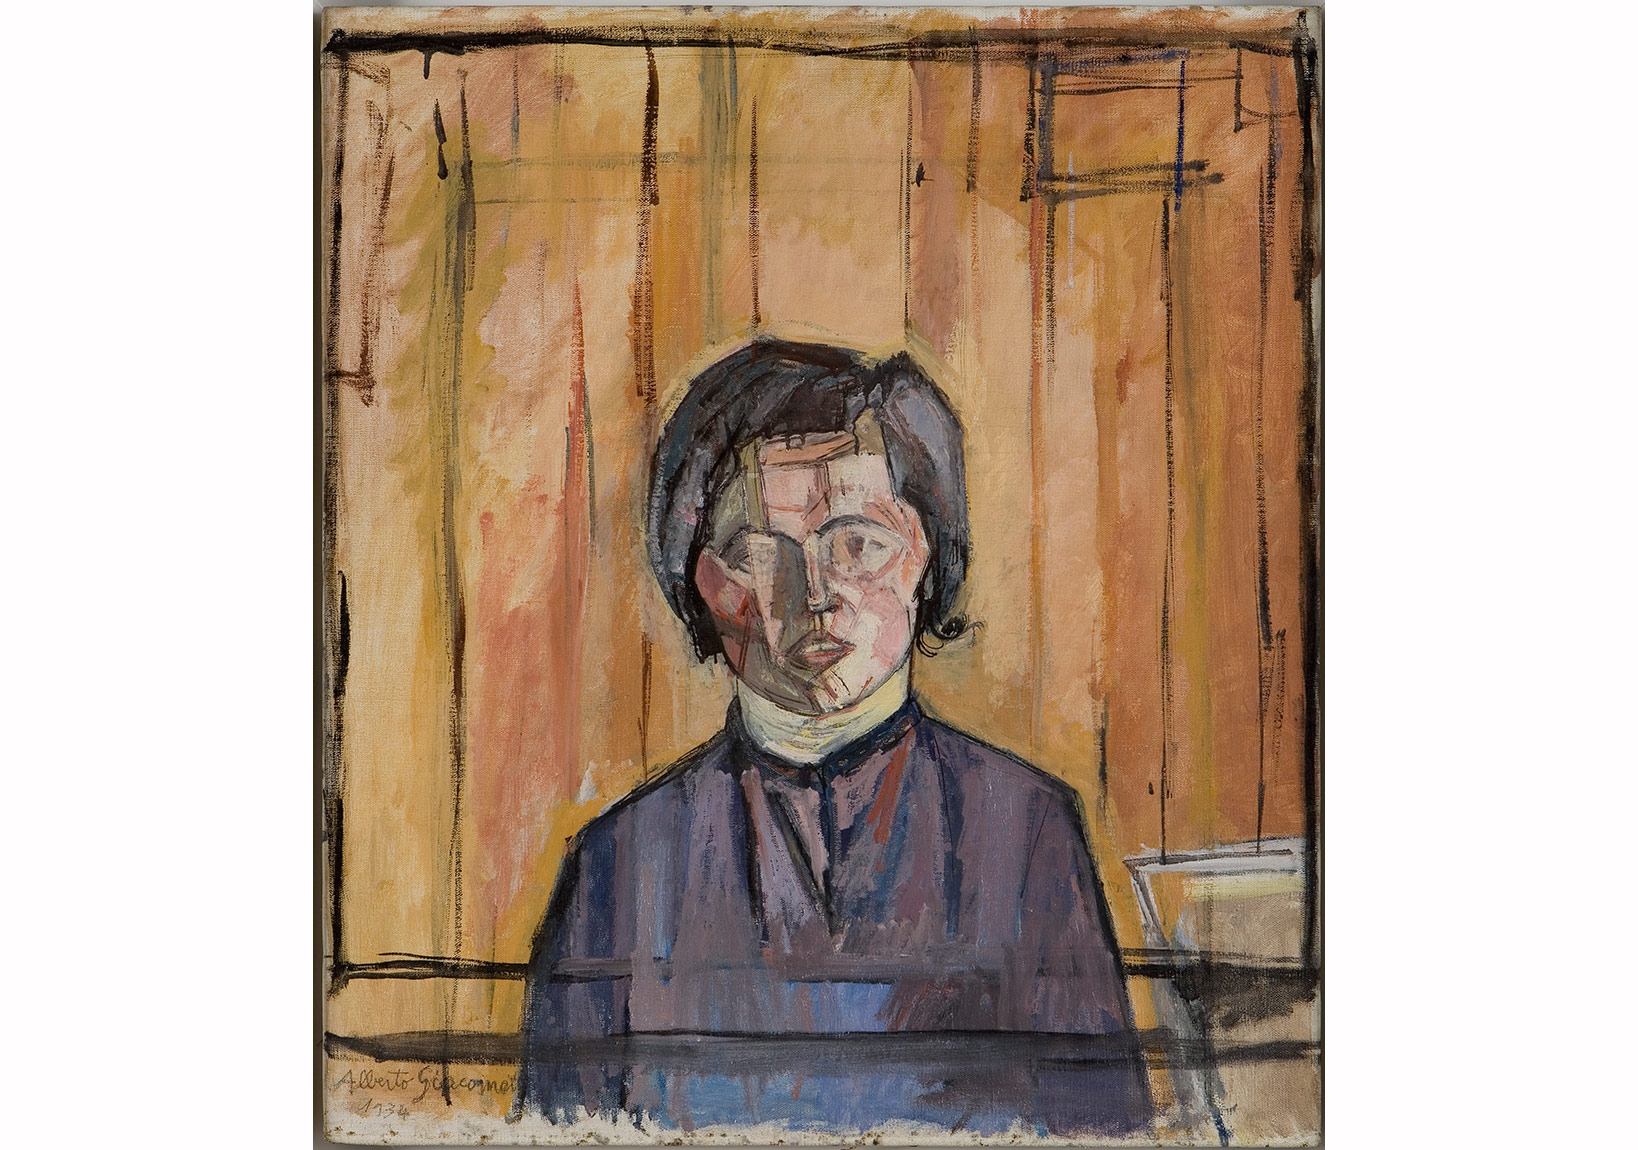 Alberto Giacometti, Maria, 1934 Tuval üstüne yağlıboya / Oil on canvas, 66,4 x 59,1 cm Giacometti Vakfı Koleksiyonu, Paris, env. 1994-0587, Giacometti Foundation Collection, Paris, inv. 1994-0587 © Estate Giacometti (Fondation Giacometti + ADAGP) Paris, 2015